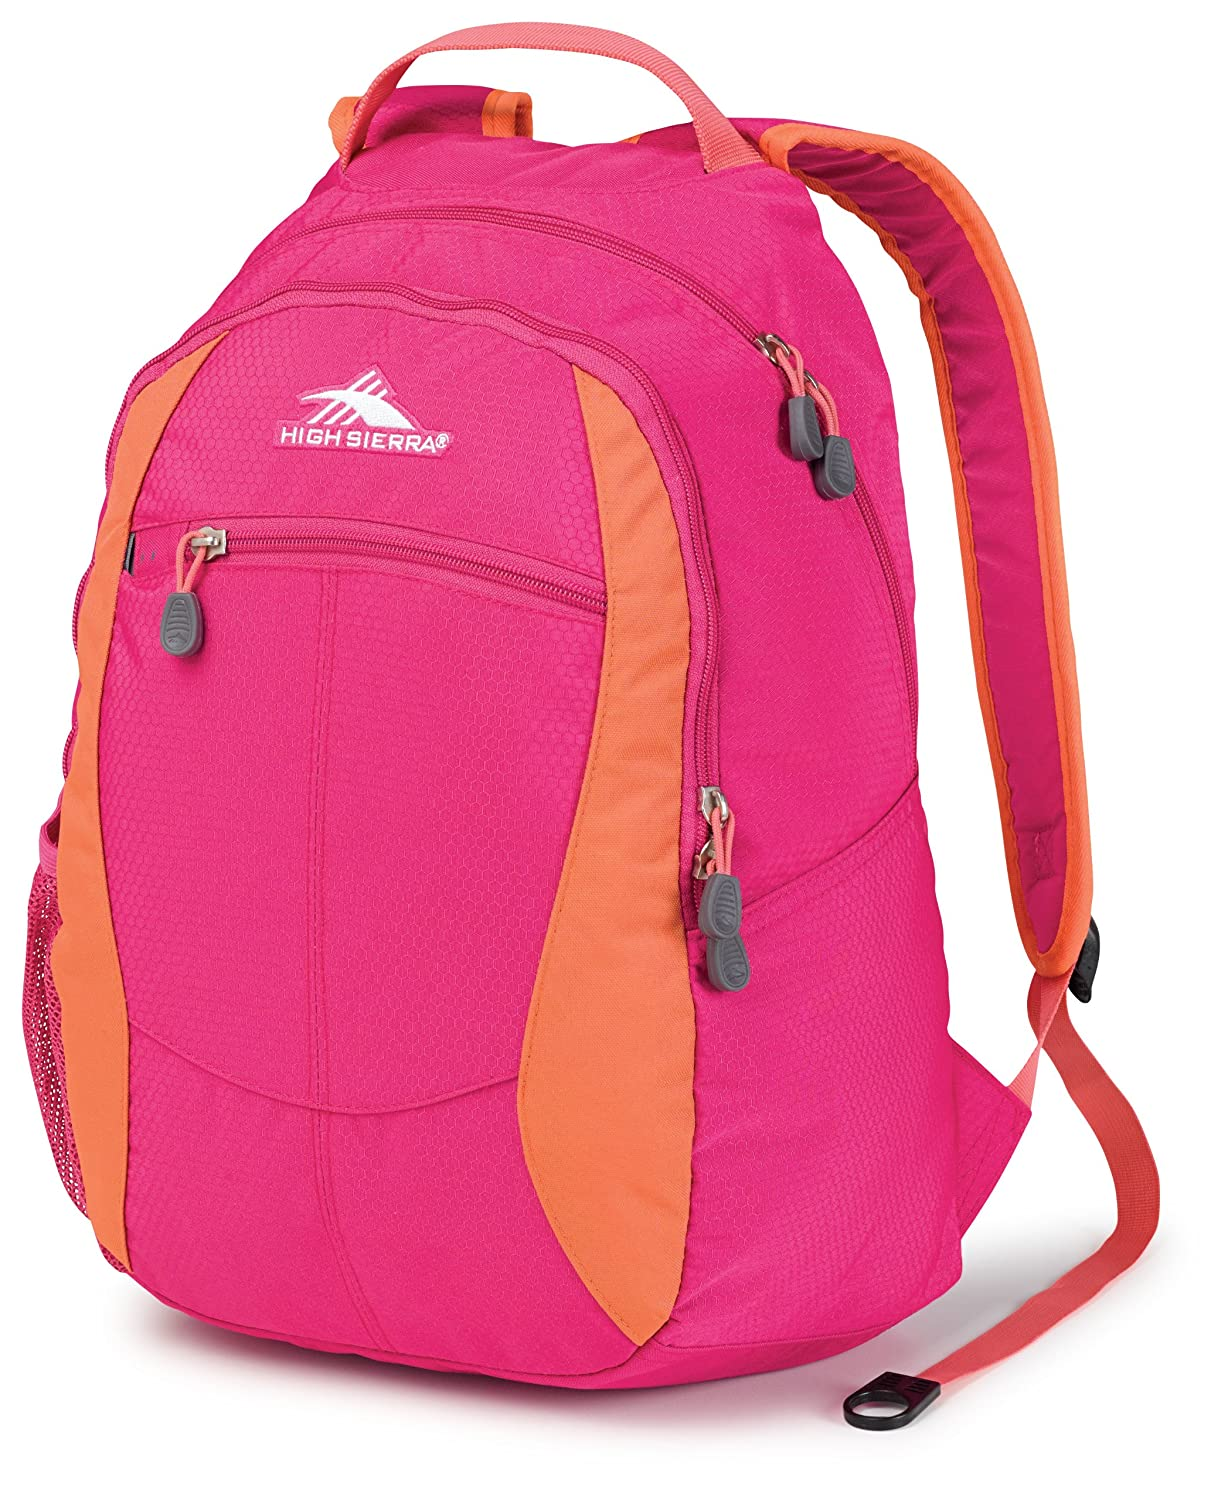 High Sierra Curve Backpack, Fuchsia/Coral